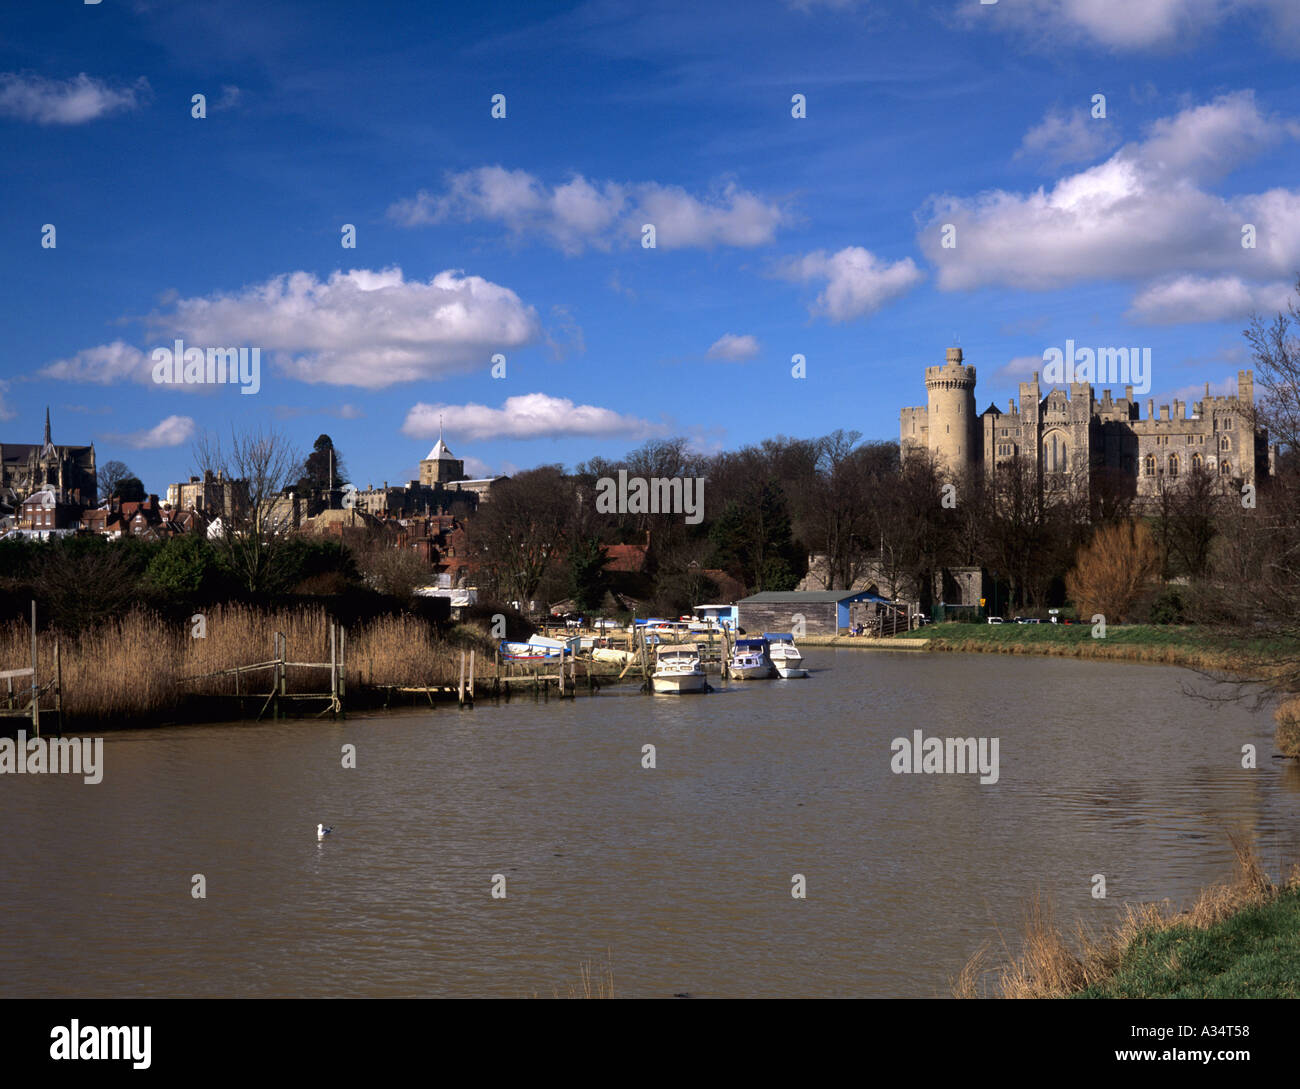 ARUNDEL TOWN and CASTLE from along the River Arun with the cathedral in view Arundel West Sussex England UK Stock Photo